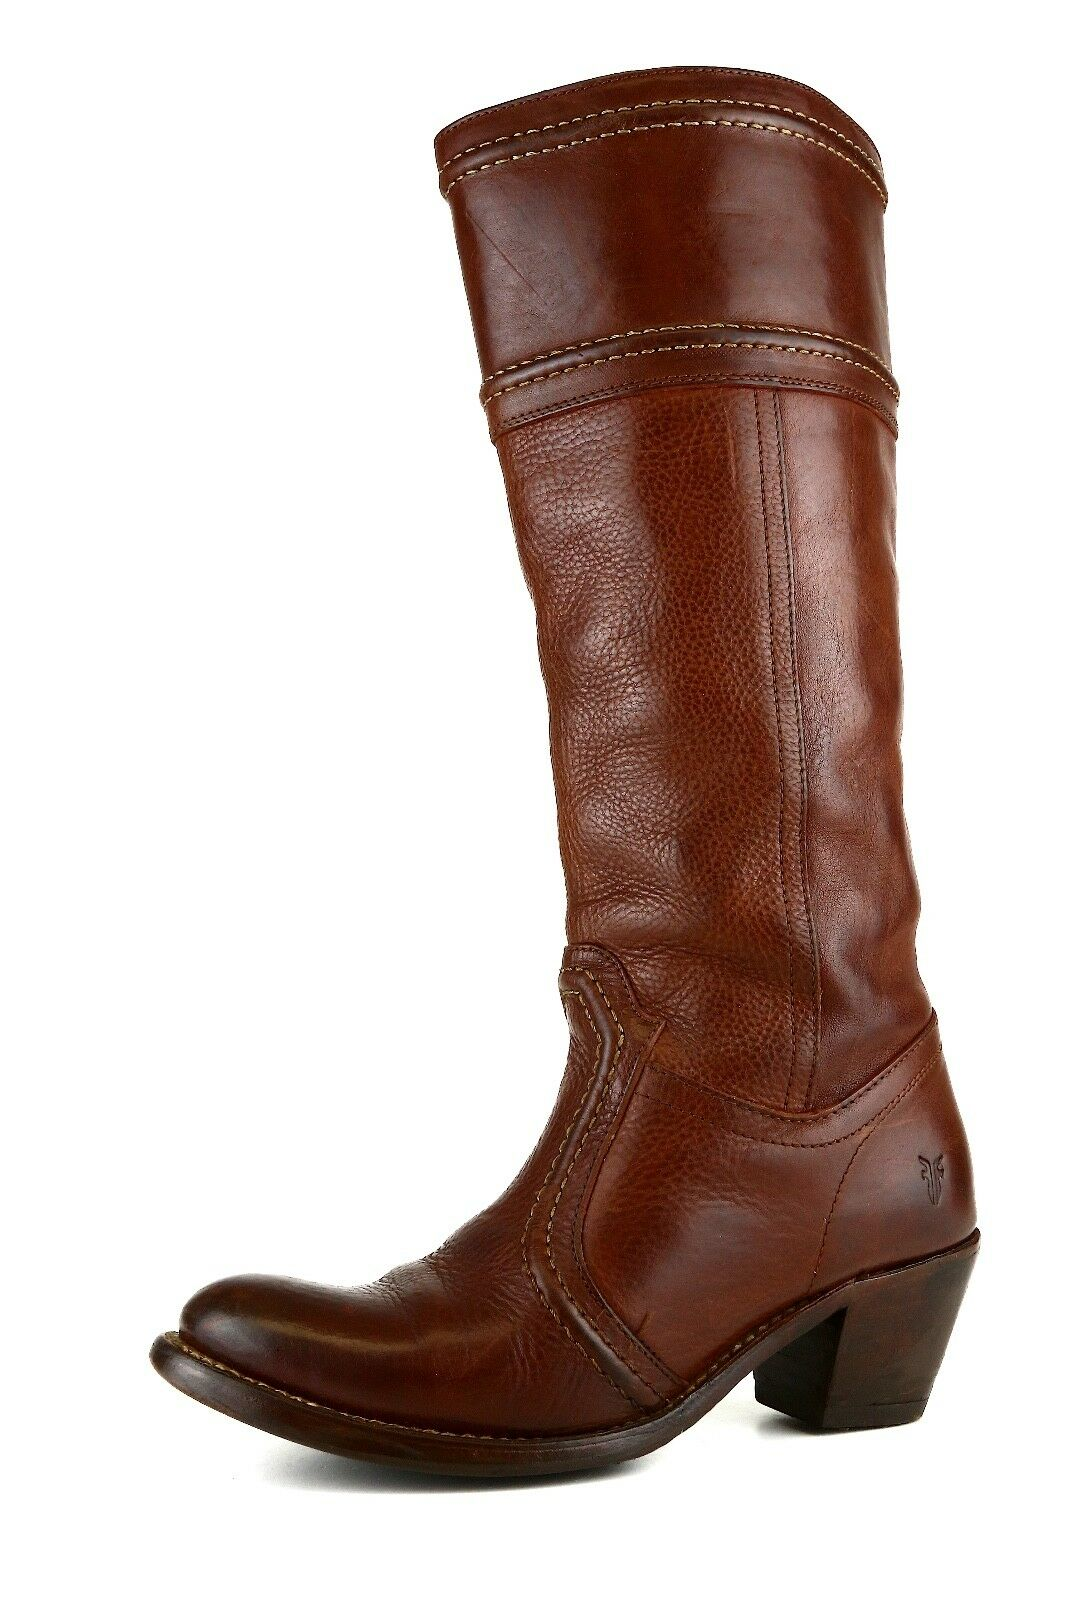 FRYE Jane 14 Pull On Leather Boot Brown Women Sz 6.5 B 5760 *